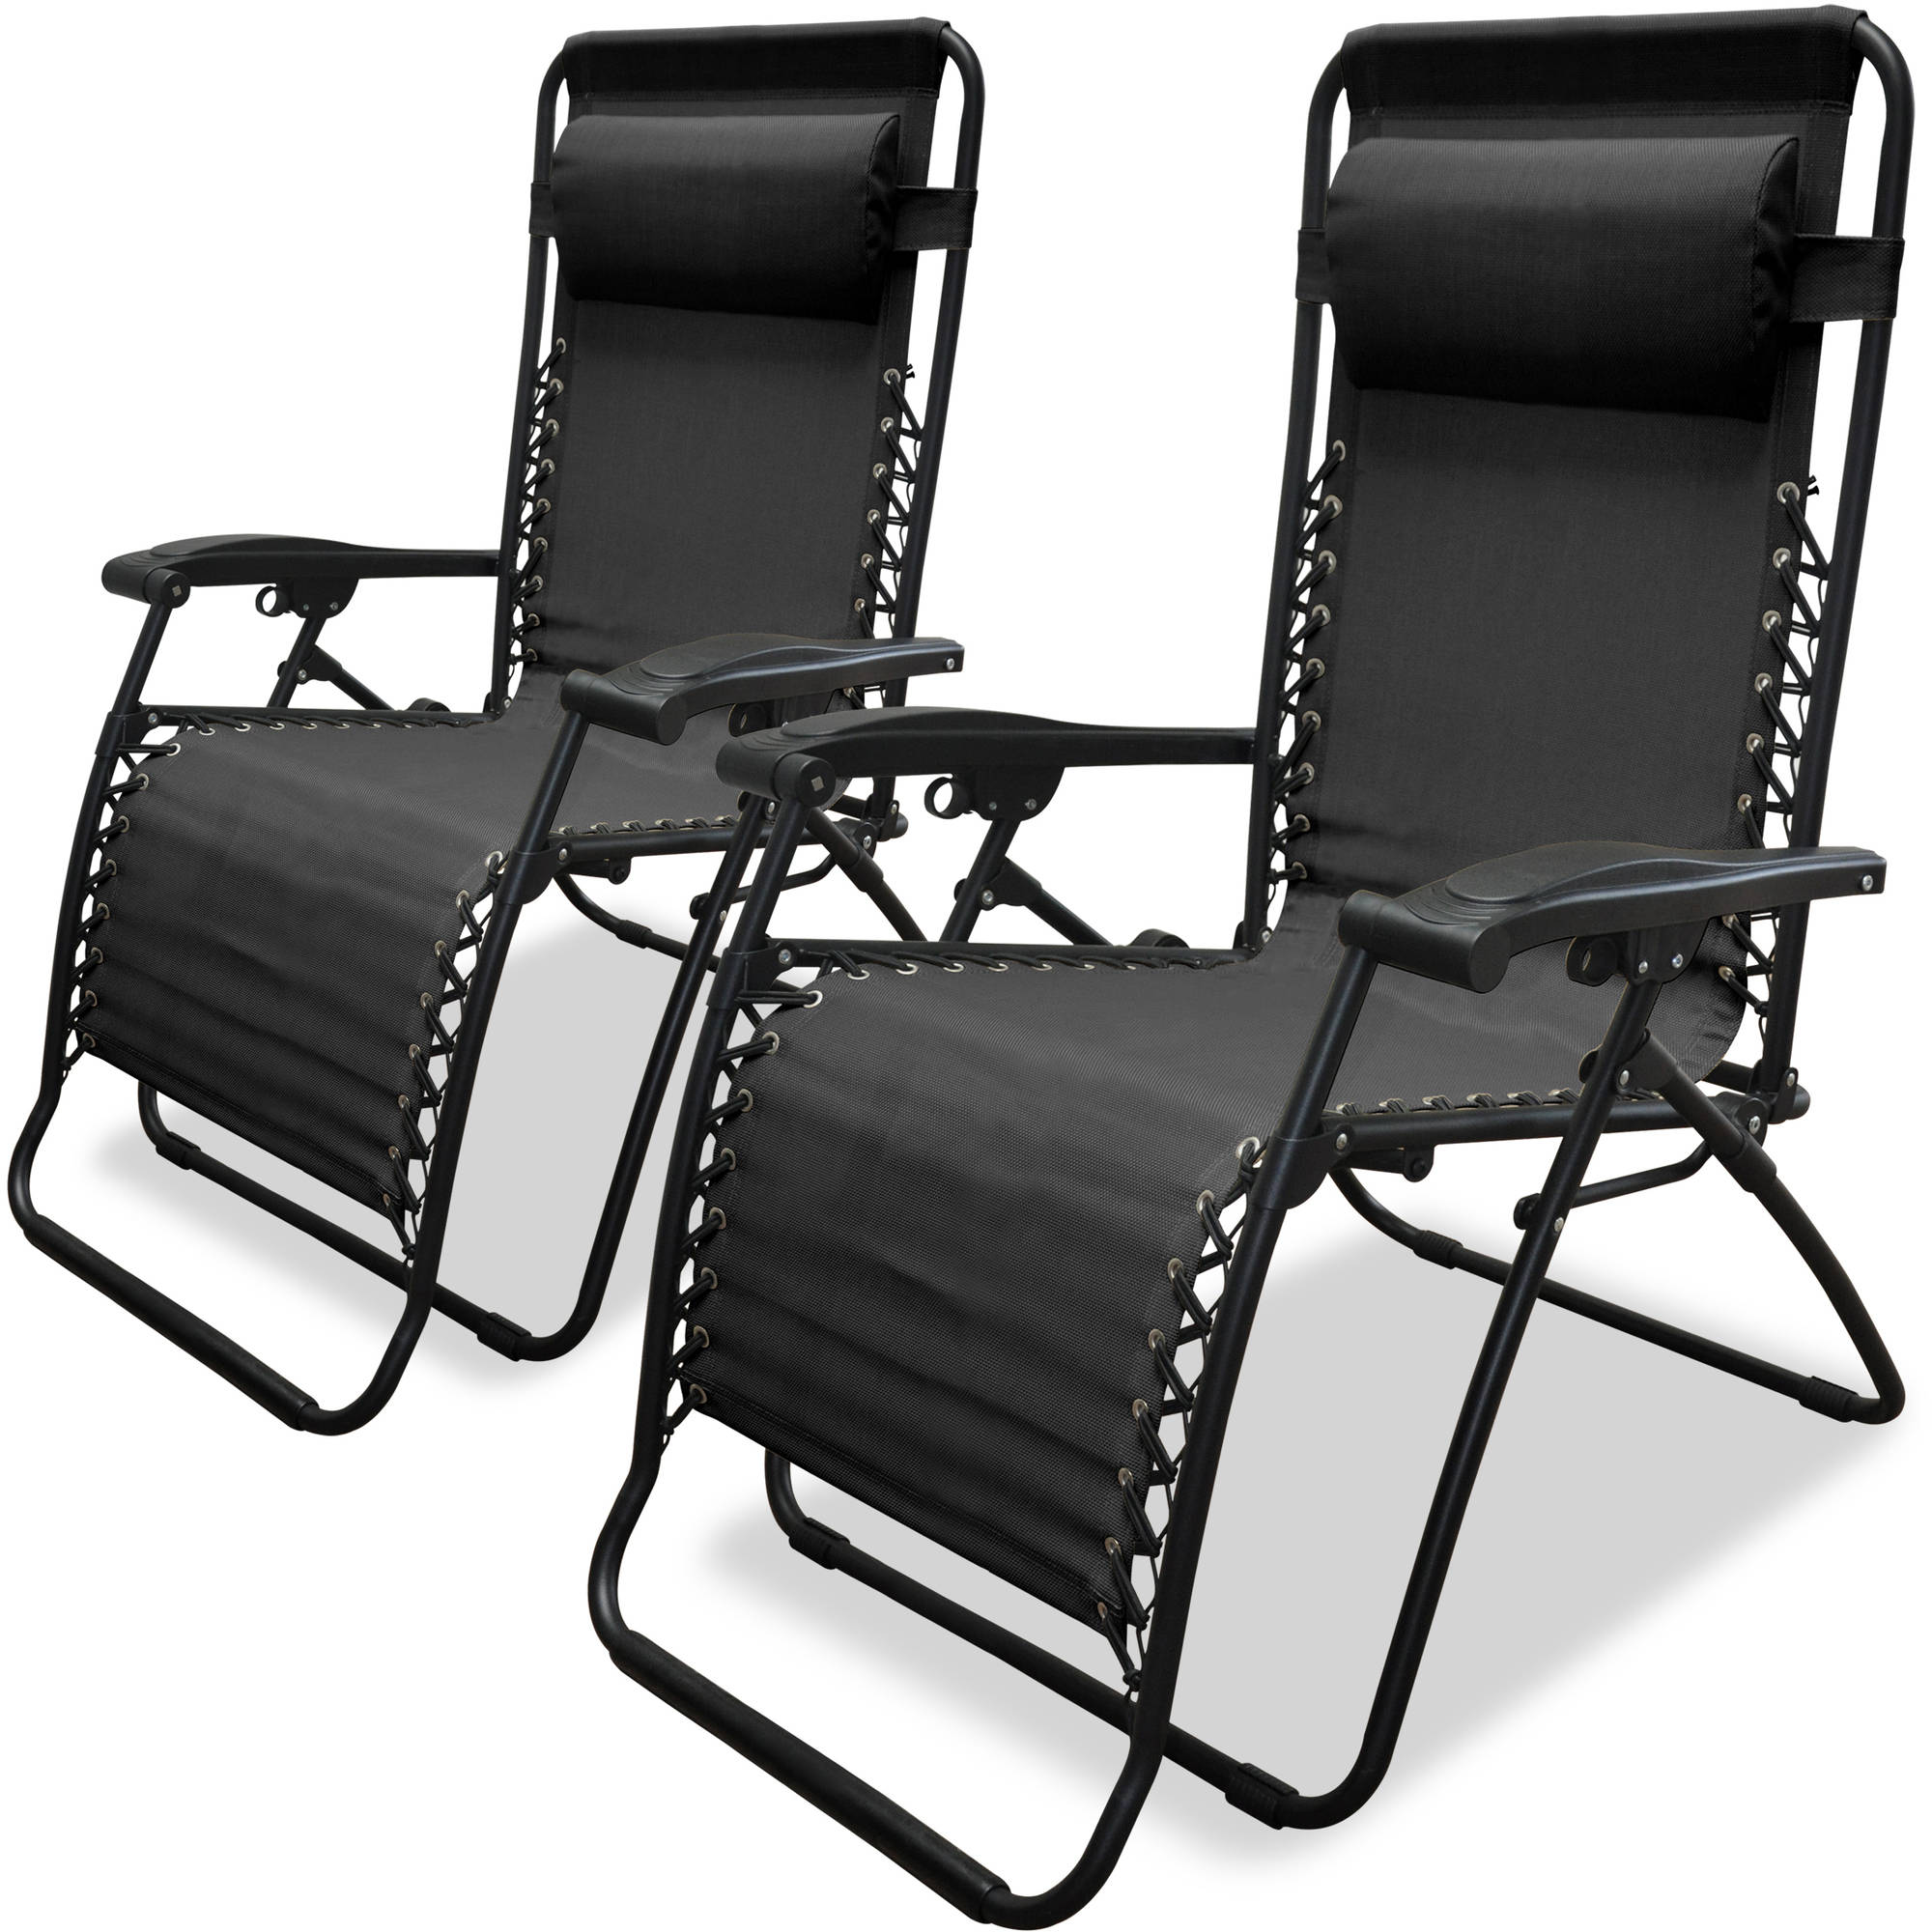 Caravan Sports Infinity Zero Gravity Chair, 2pk, Black